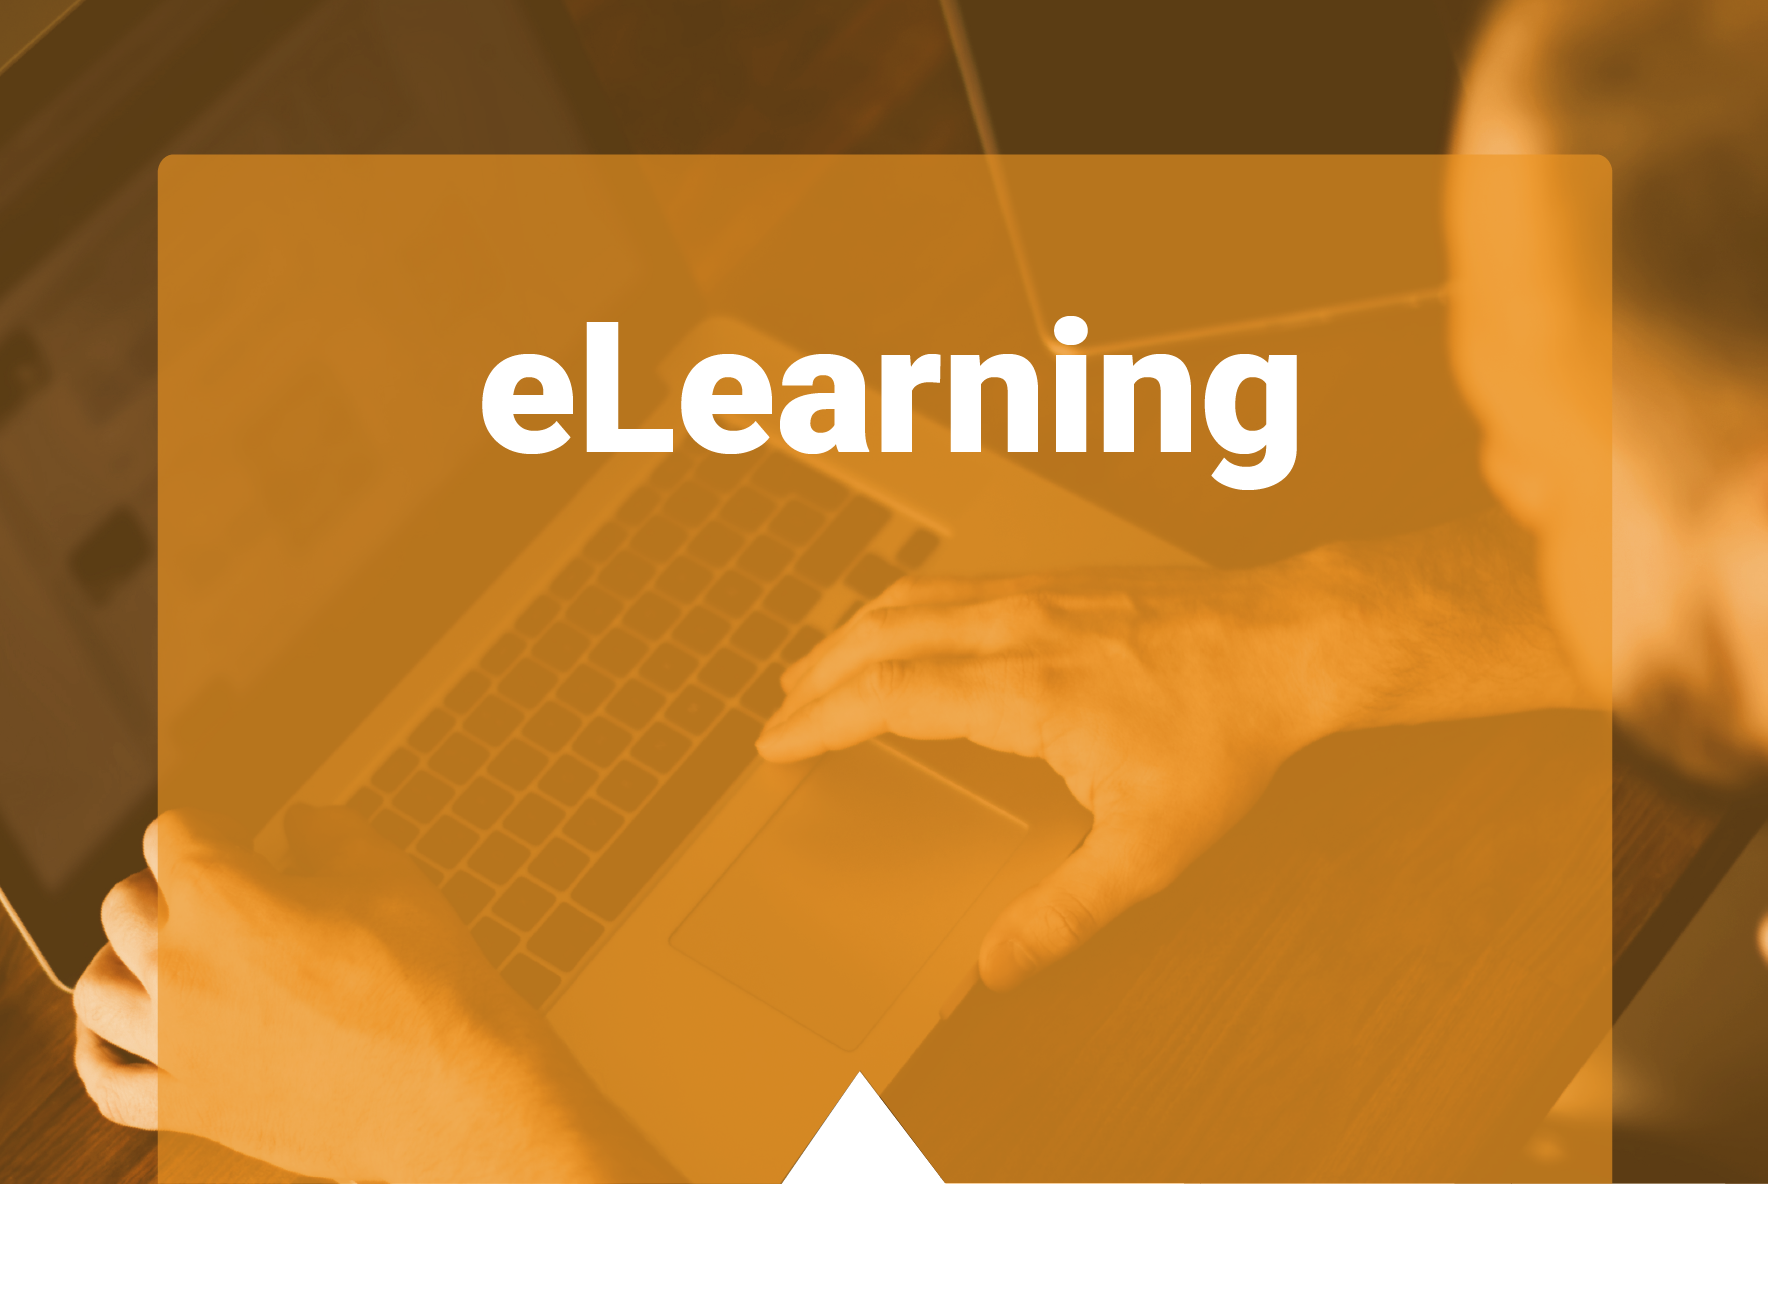 eLearning-graphic-600x424